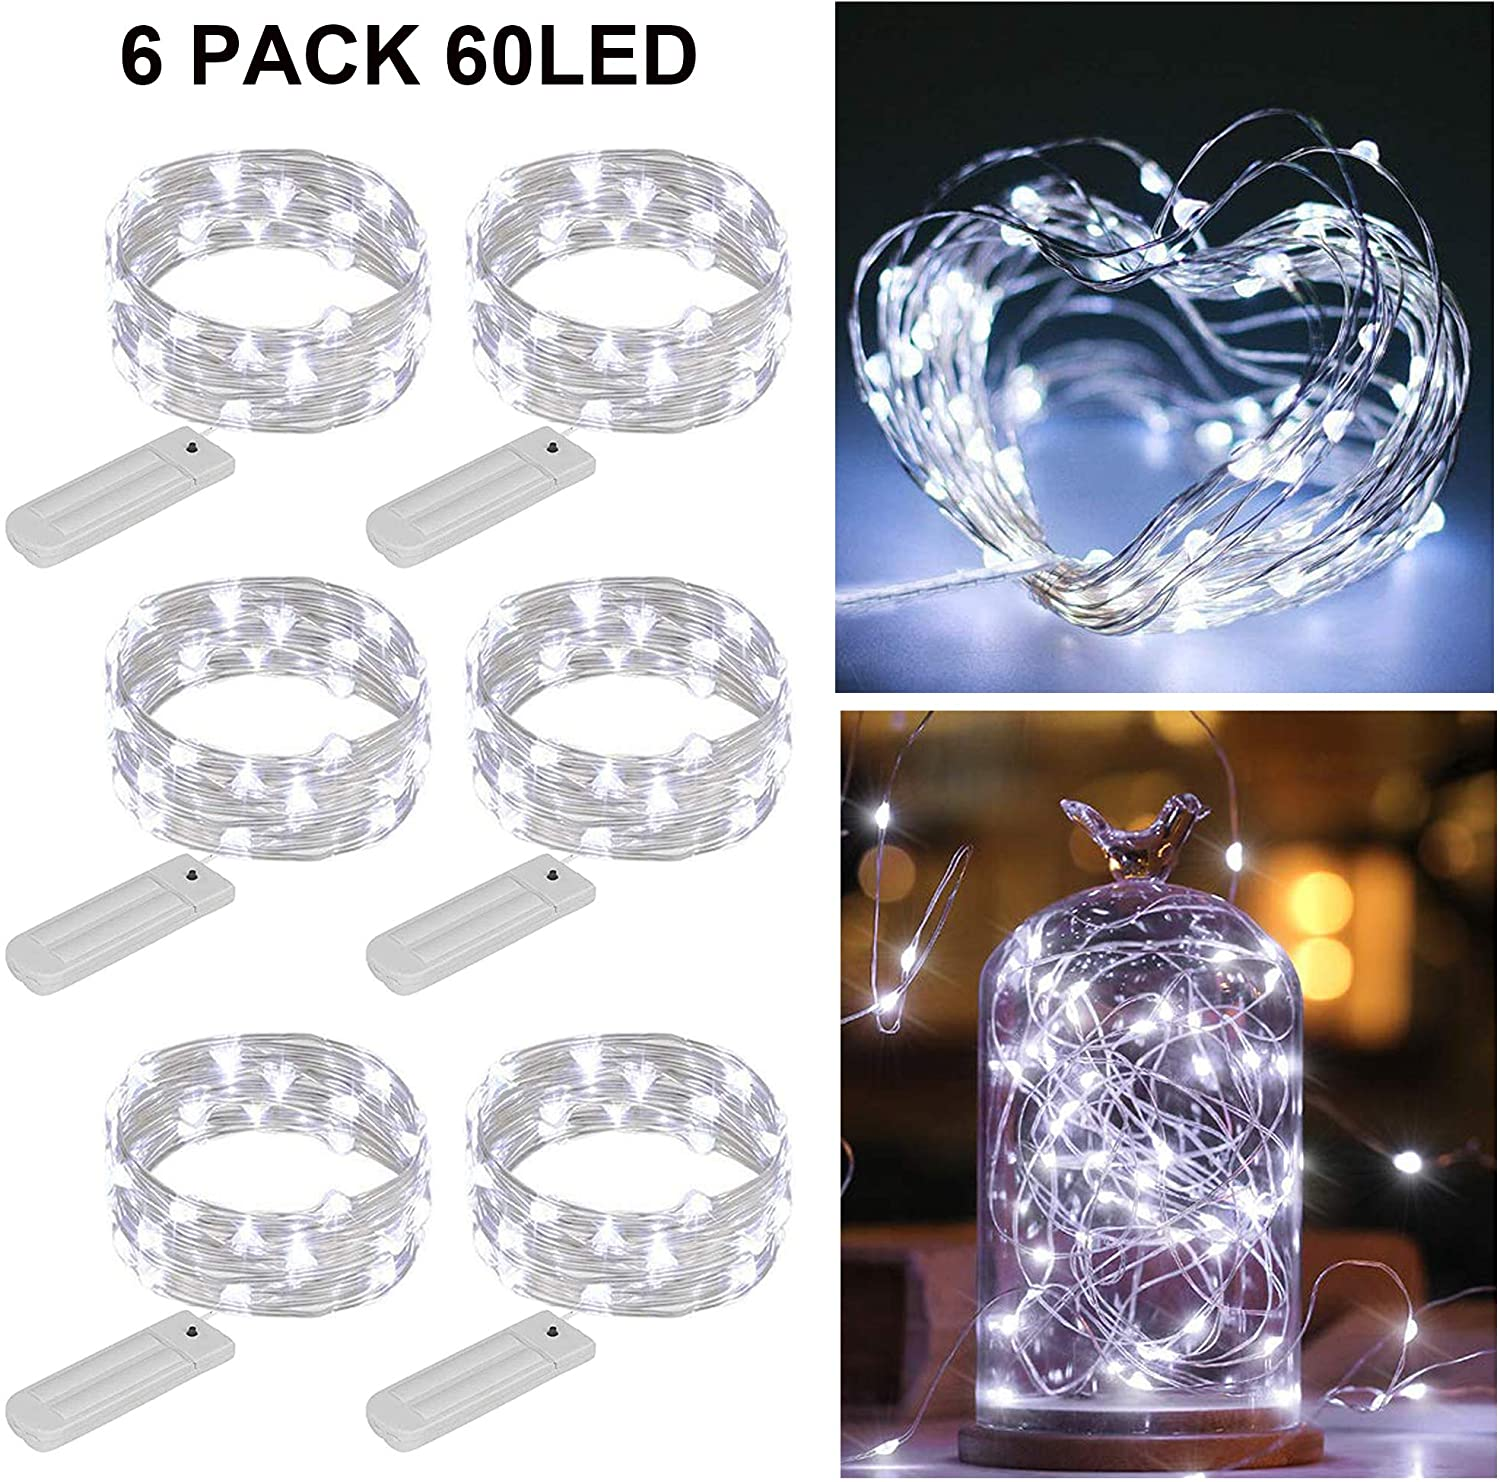 ZNYCYE 6 Pack 10 Feet 60 Led Fairy Lights Battery Operated - String Lights with 8 Modes Waterproof Copper Wire Firefly Lights for DIY, Wedding, Indoor, Craft Decoration (Cool White No Timer)